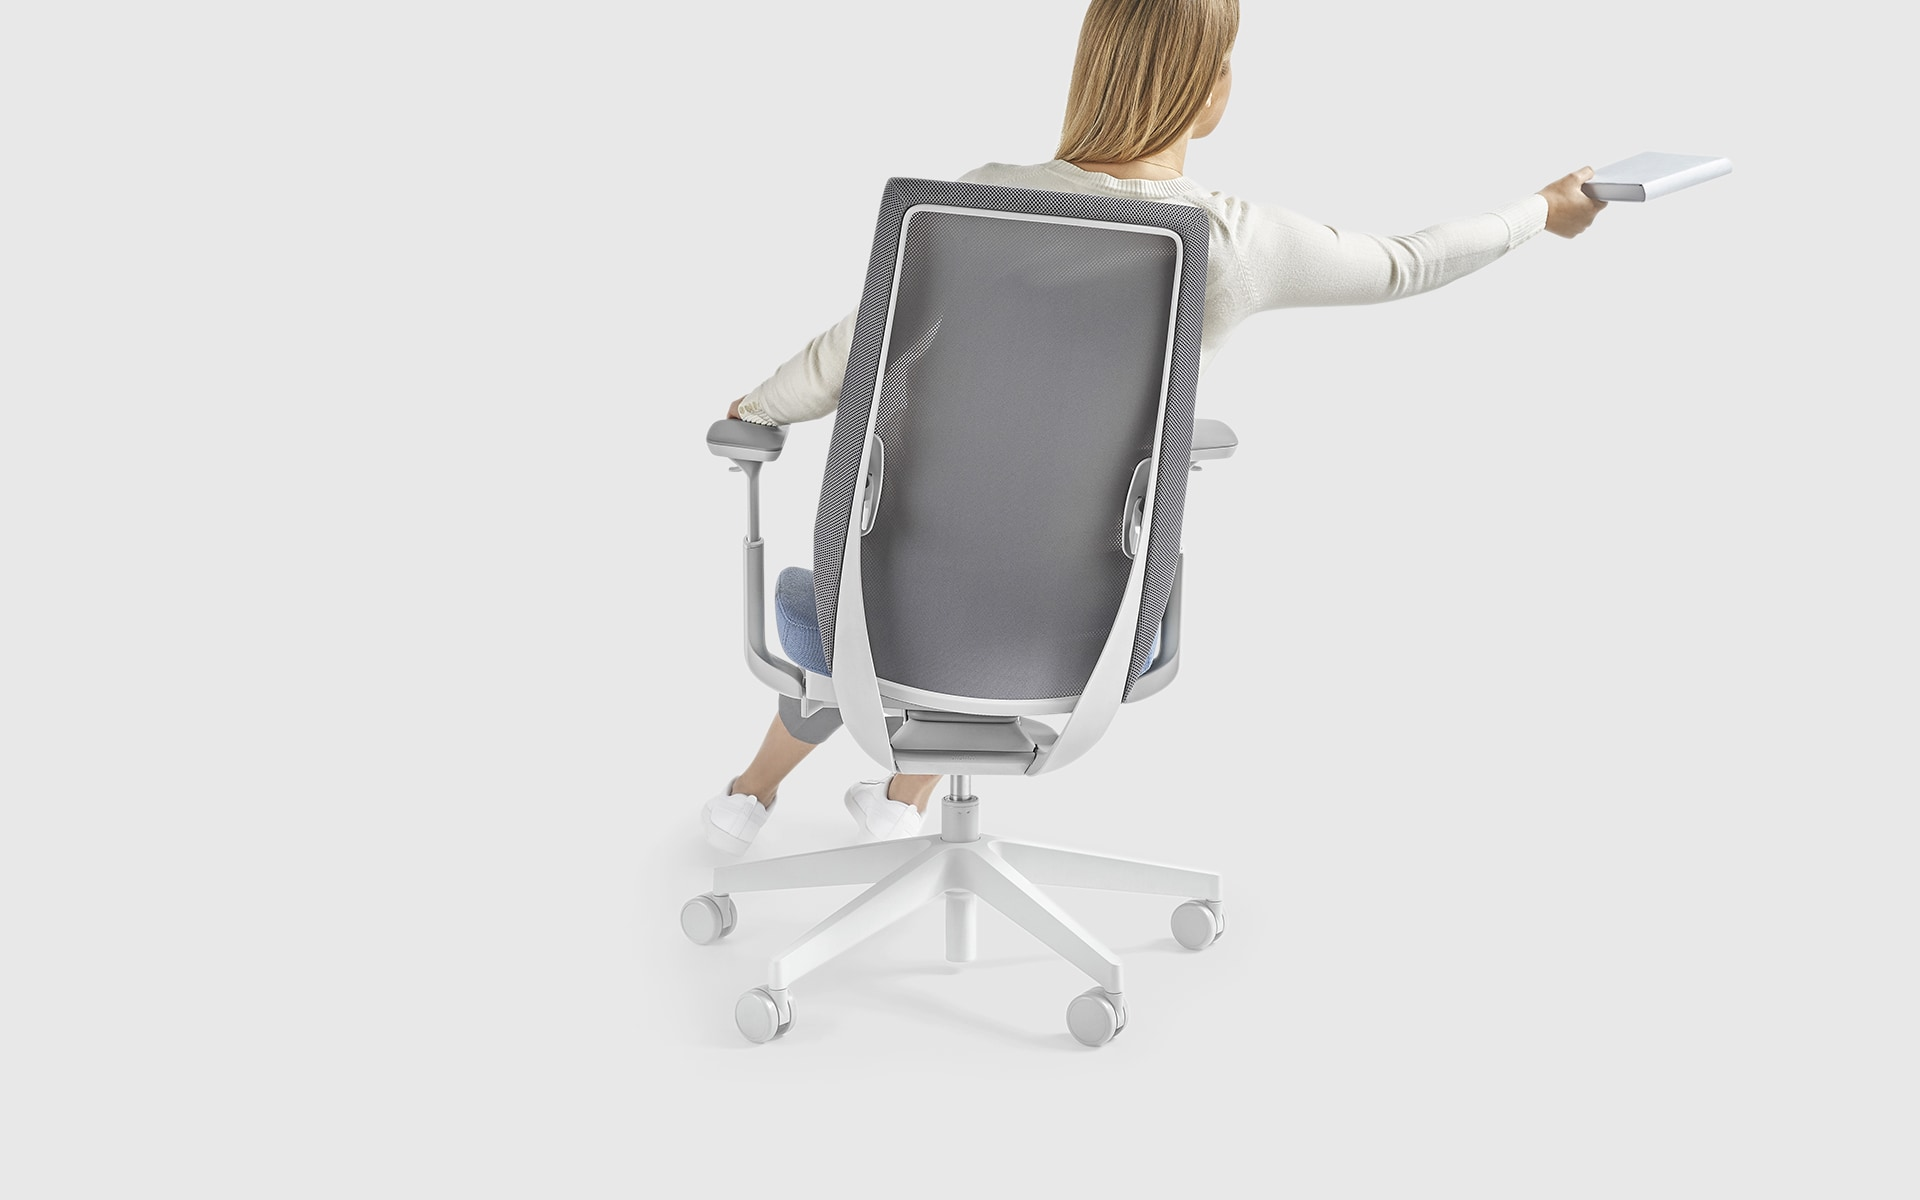 A woman sitting actively in a light grey Profim Accis Pro office chair by ITO Design